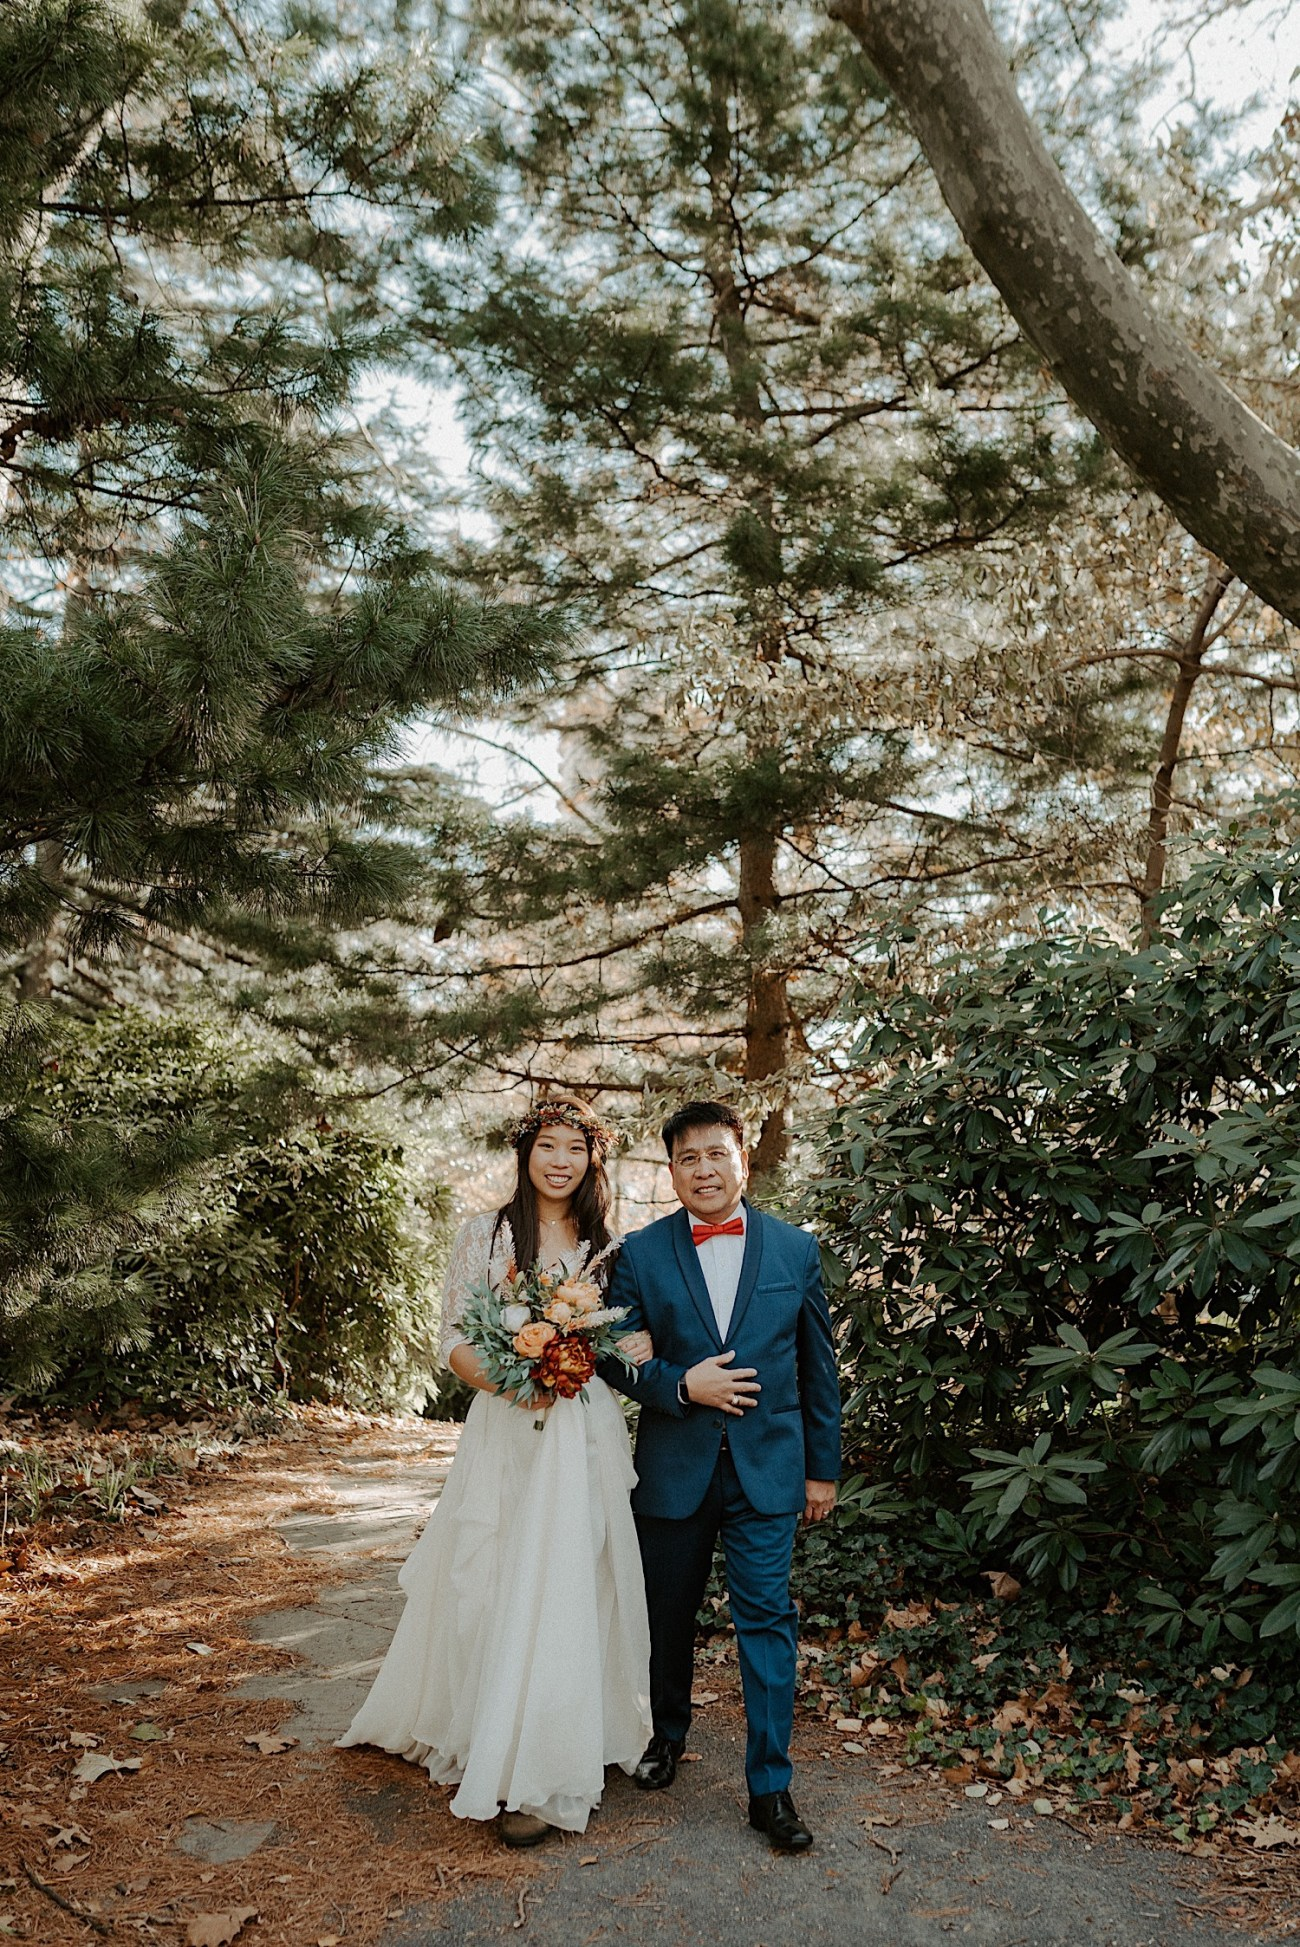 Brooklyn Botanic Garden Wedding Brooklyn Wedding Venue New York Wedding Photographer NYC Elopement 04